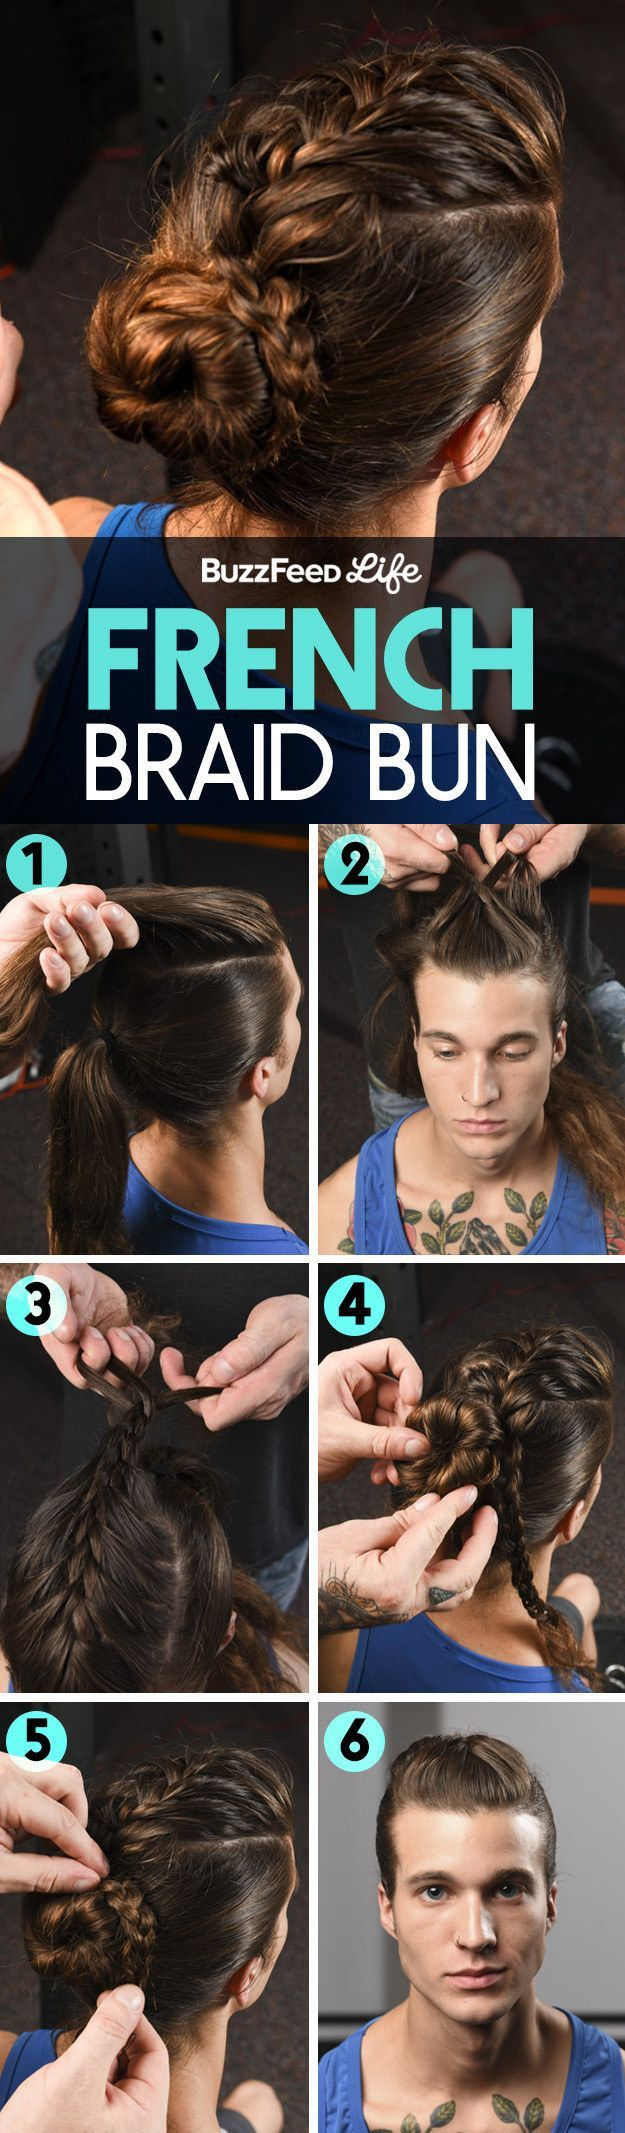 best diversidades images on pinterest hair cut man style and